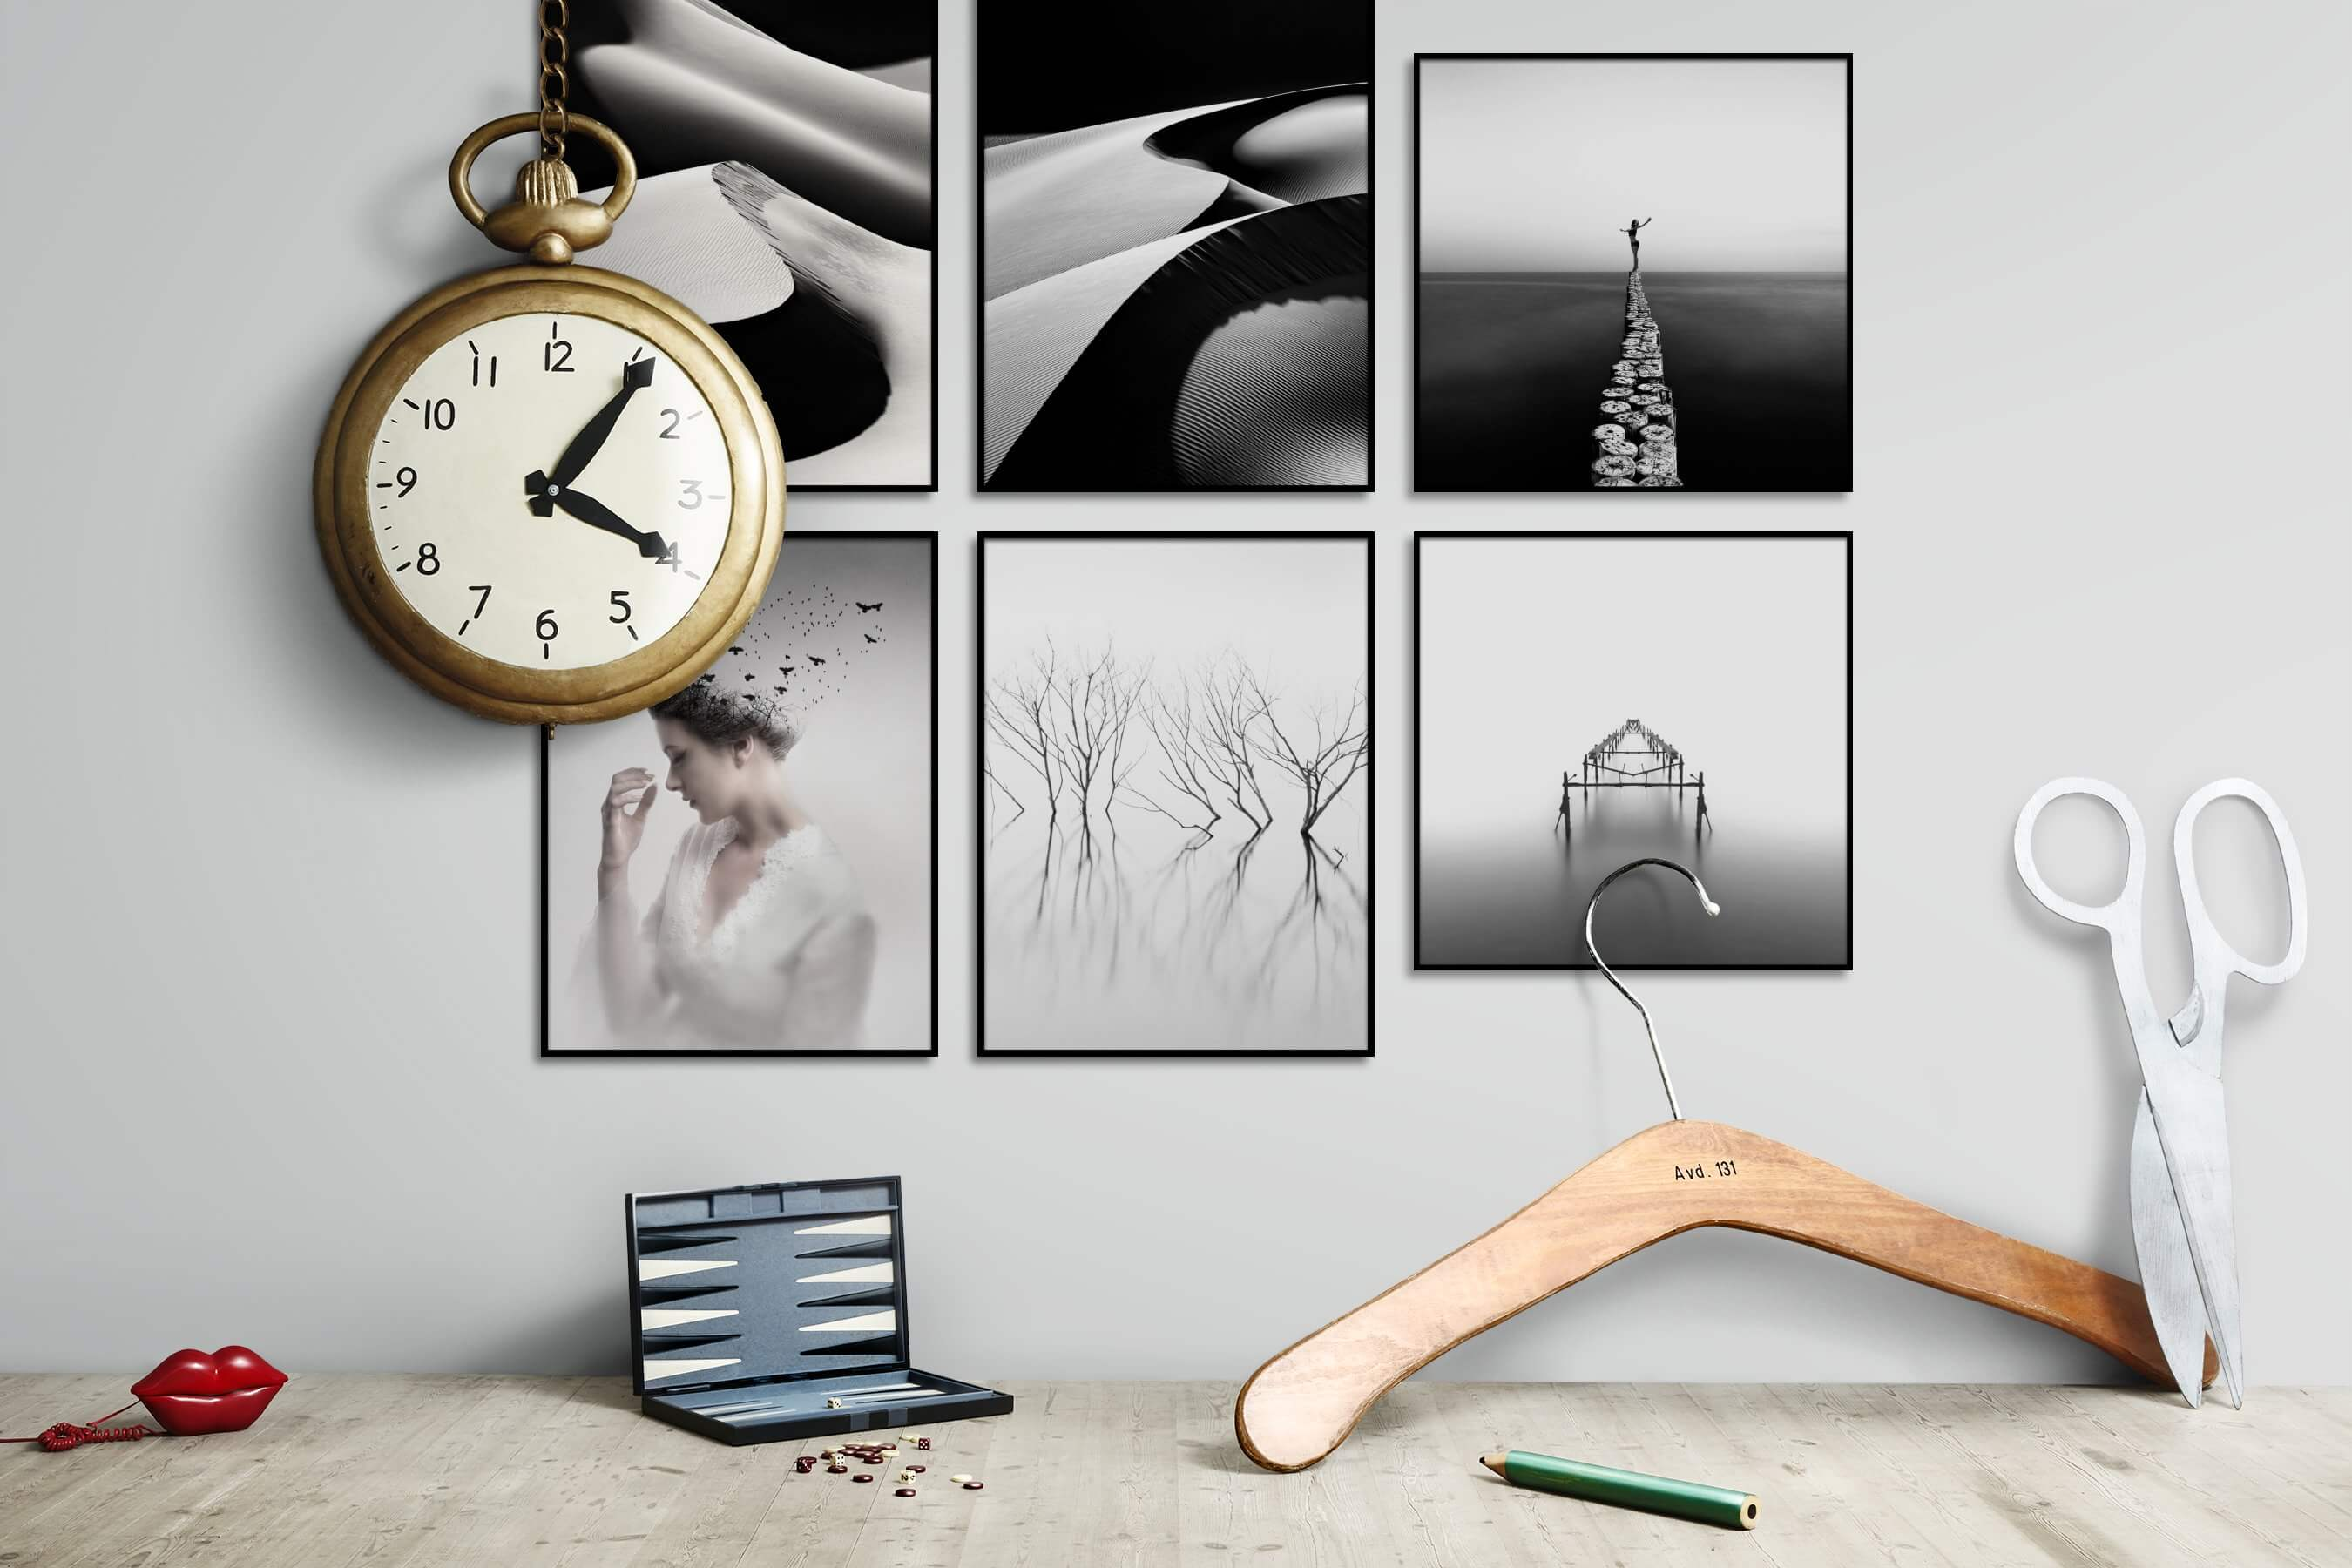 Gallery wall idea with six framed pictures arranged on a wall depicting Black & White, For the Moderate, Nature, Artsy, Bright Tones, For the Minimalist, and Mindfulness